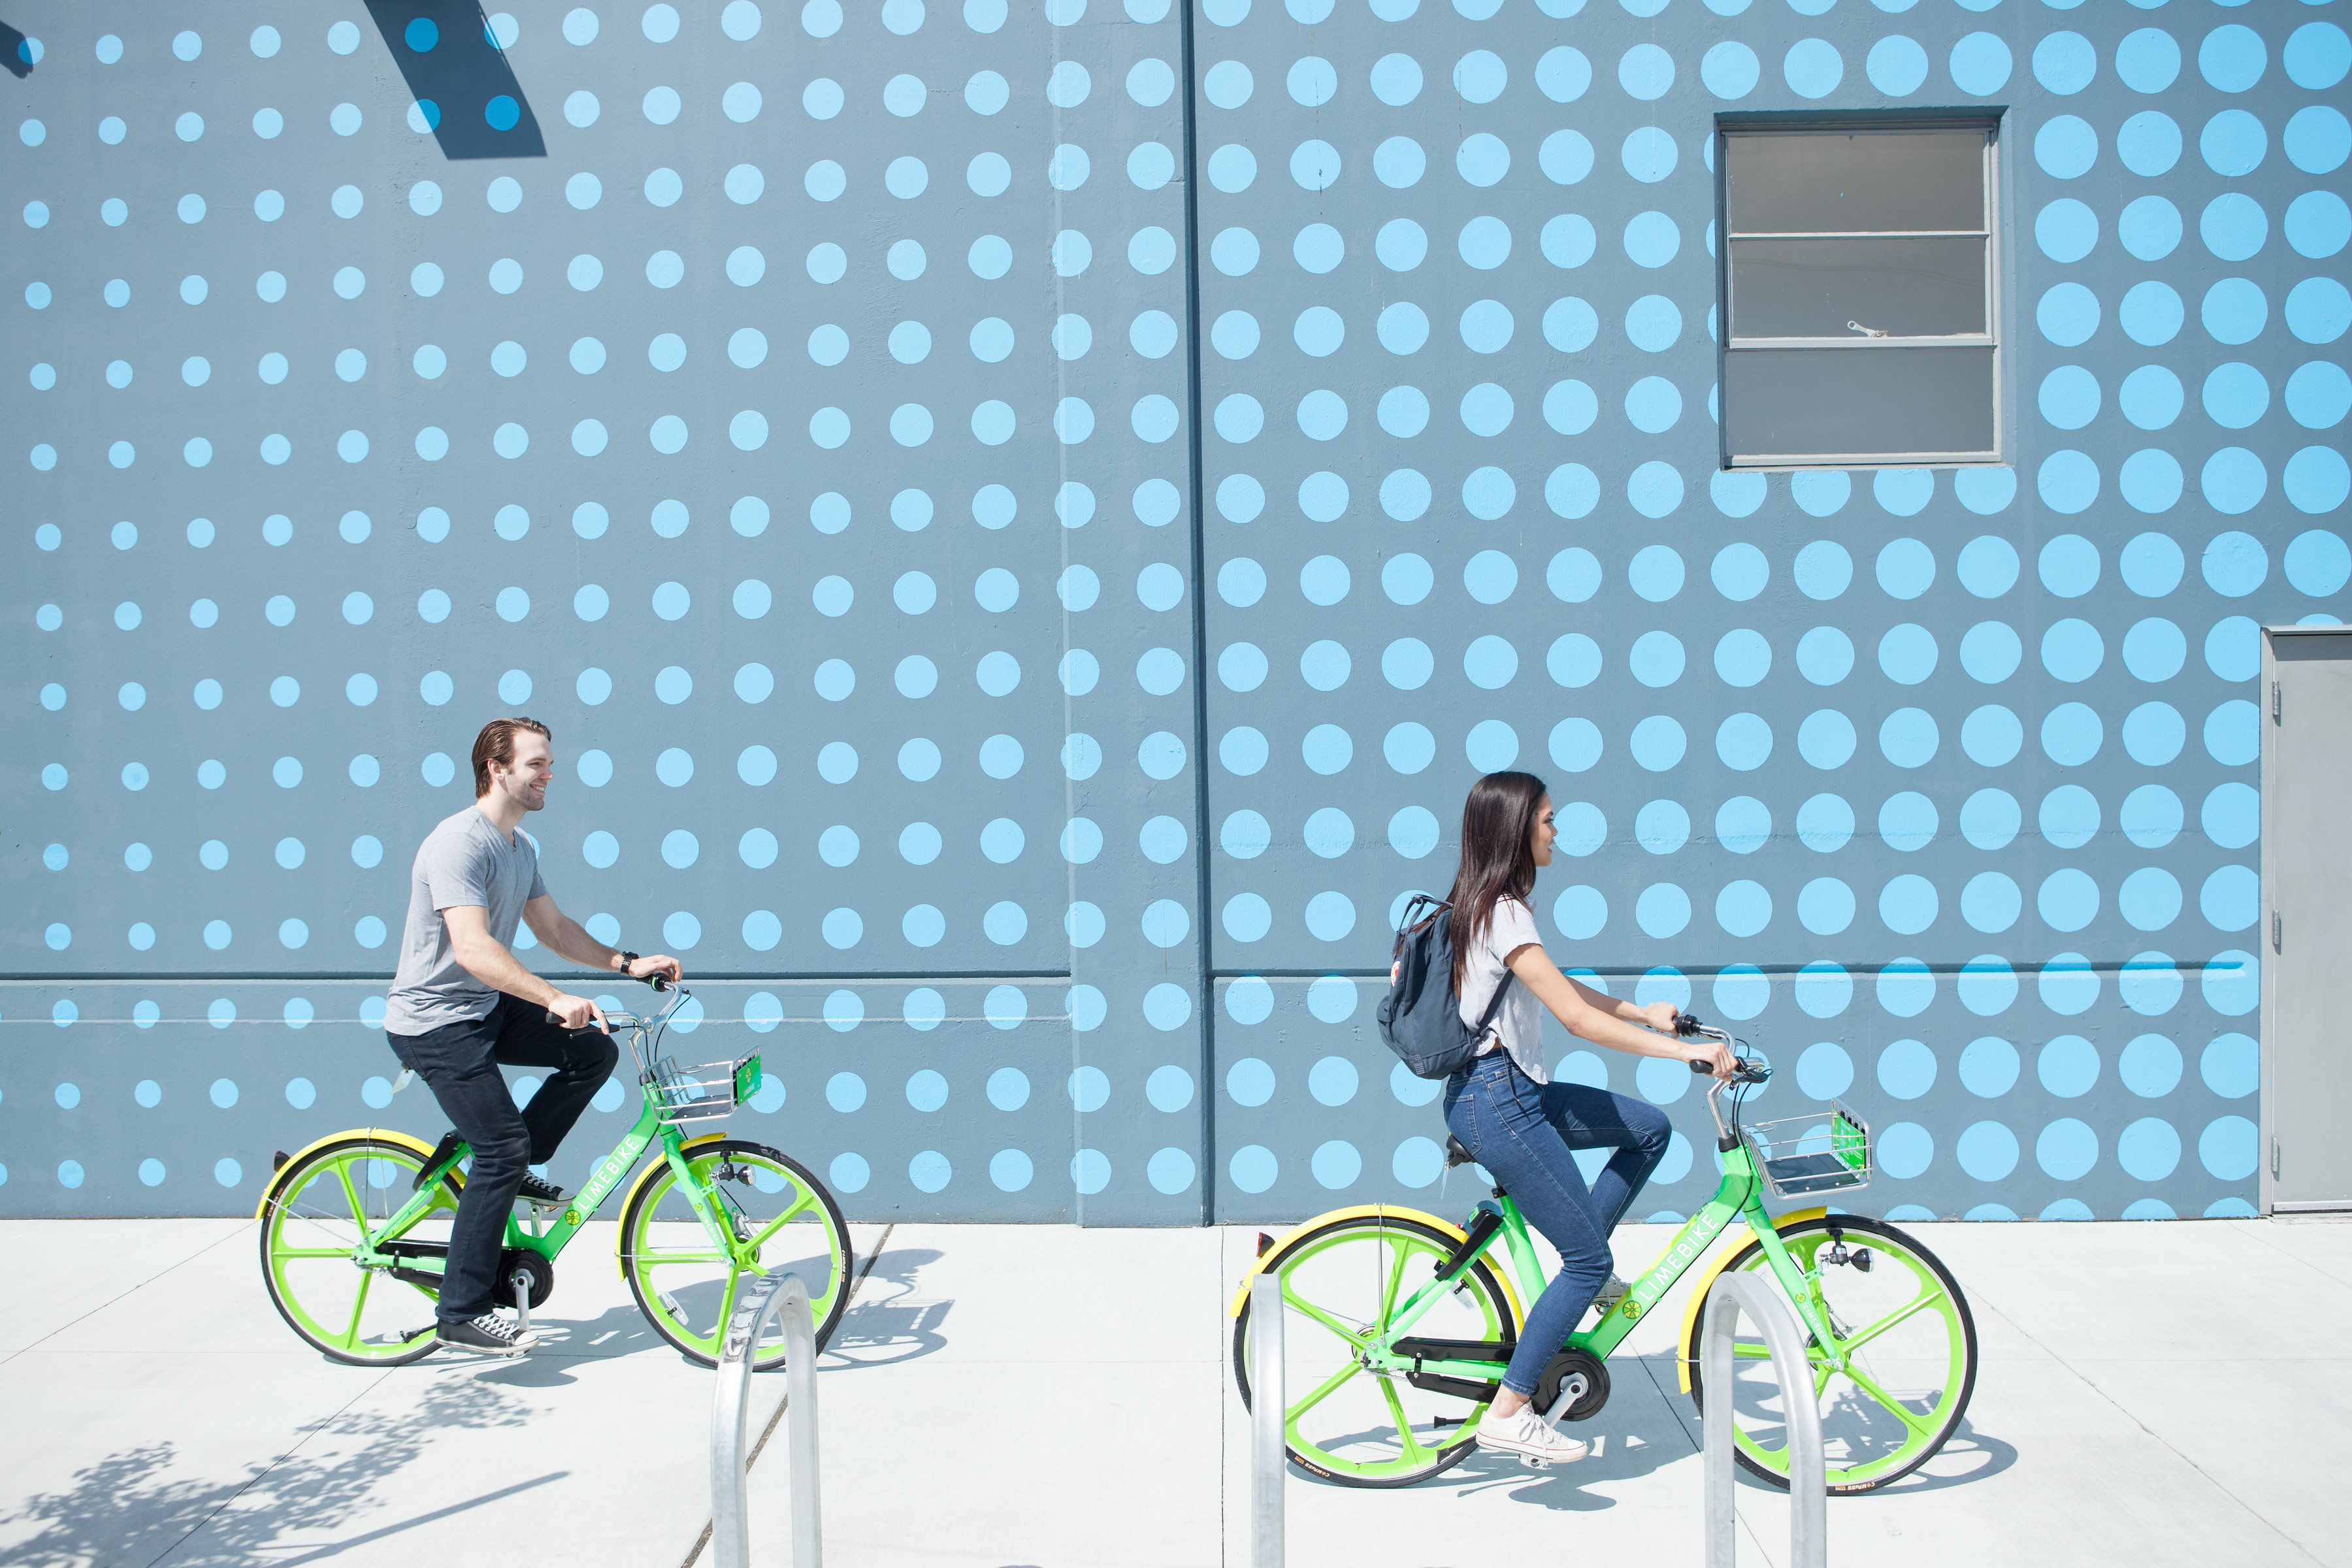 A photo of the dockless Lime Bike system.